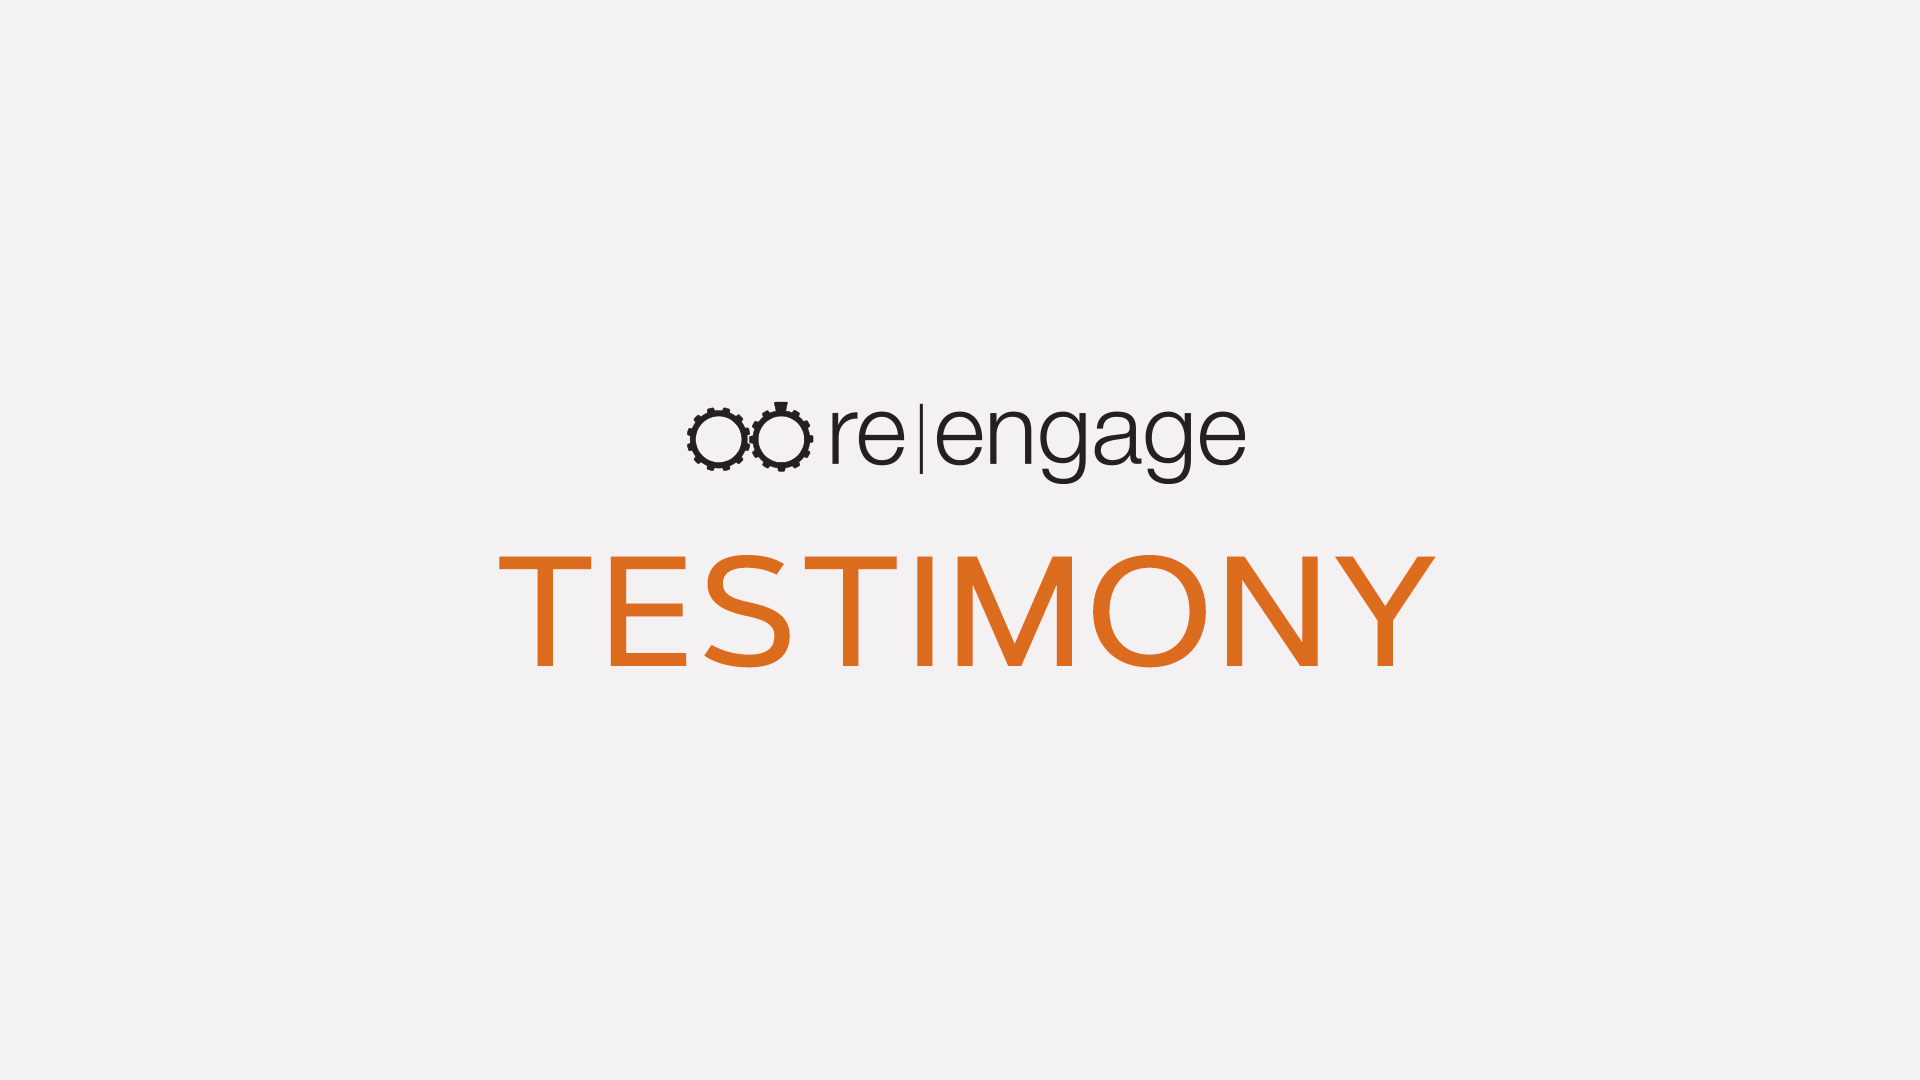 Matt and Sonja McCuen - re|engage Testimony